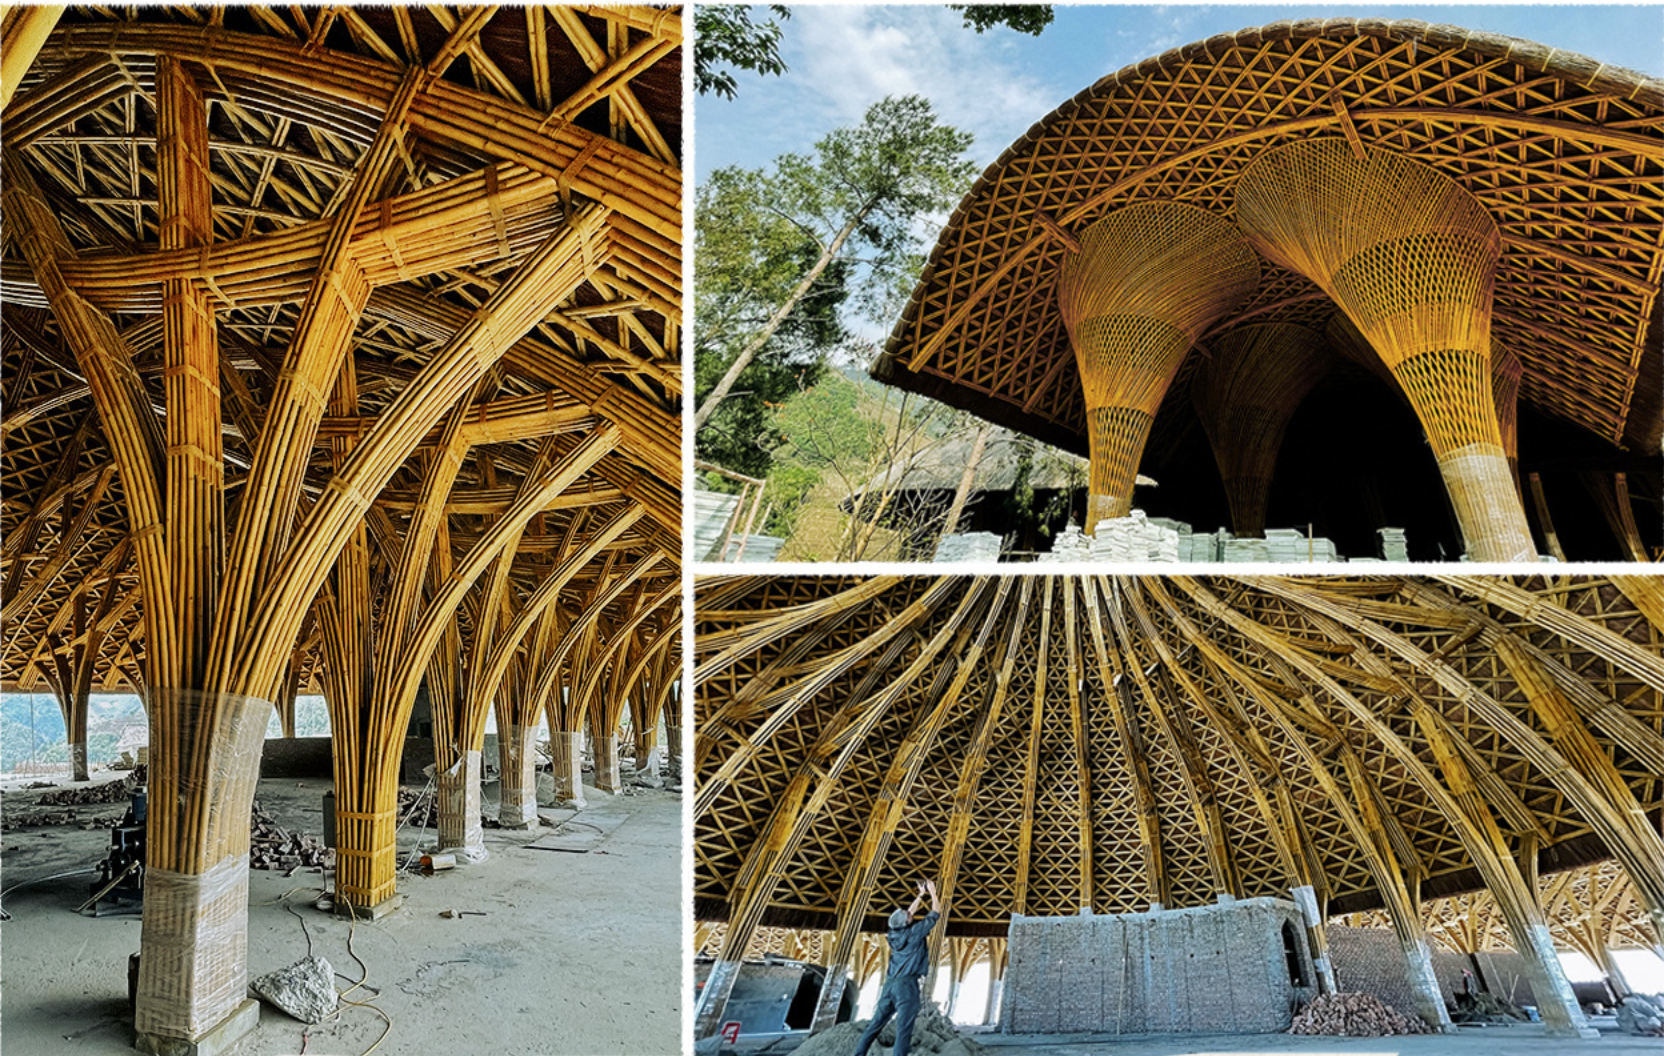 The central dome in Mu Cang Chai Ecolodge Complex in Mu Cang Chai District is made from bamboo. Photo: Viet Dung / Tuoi Tre